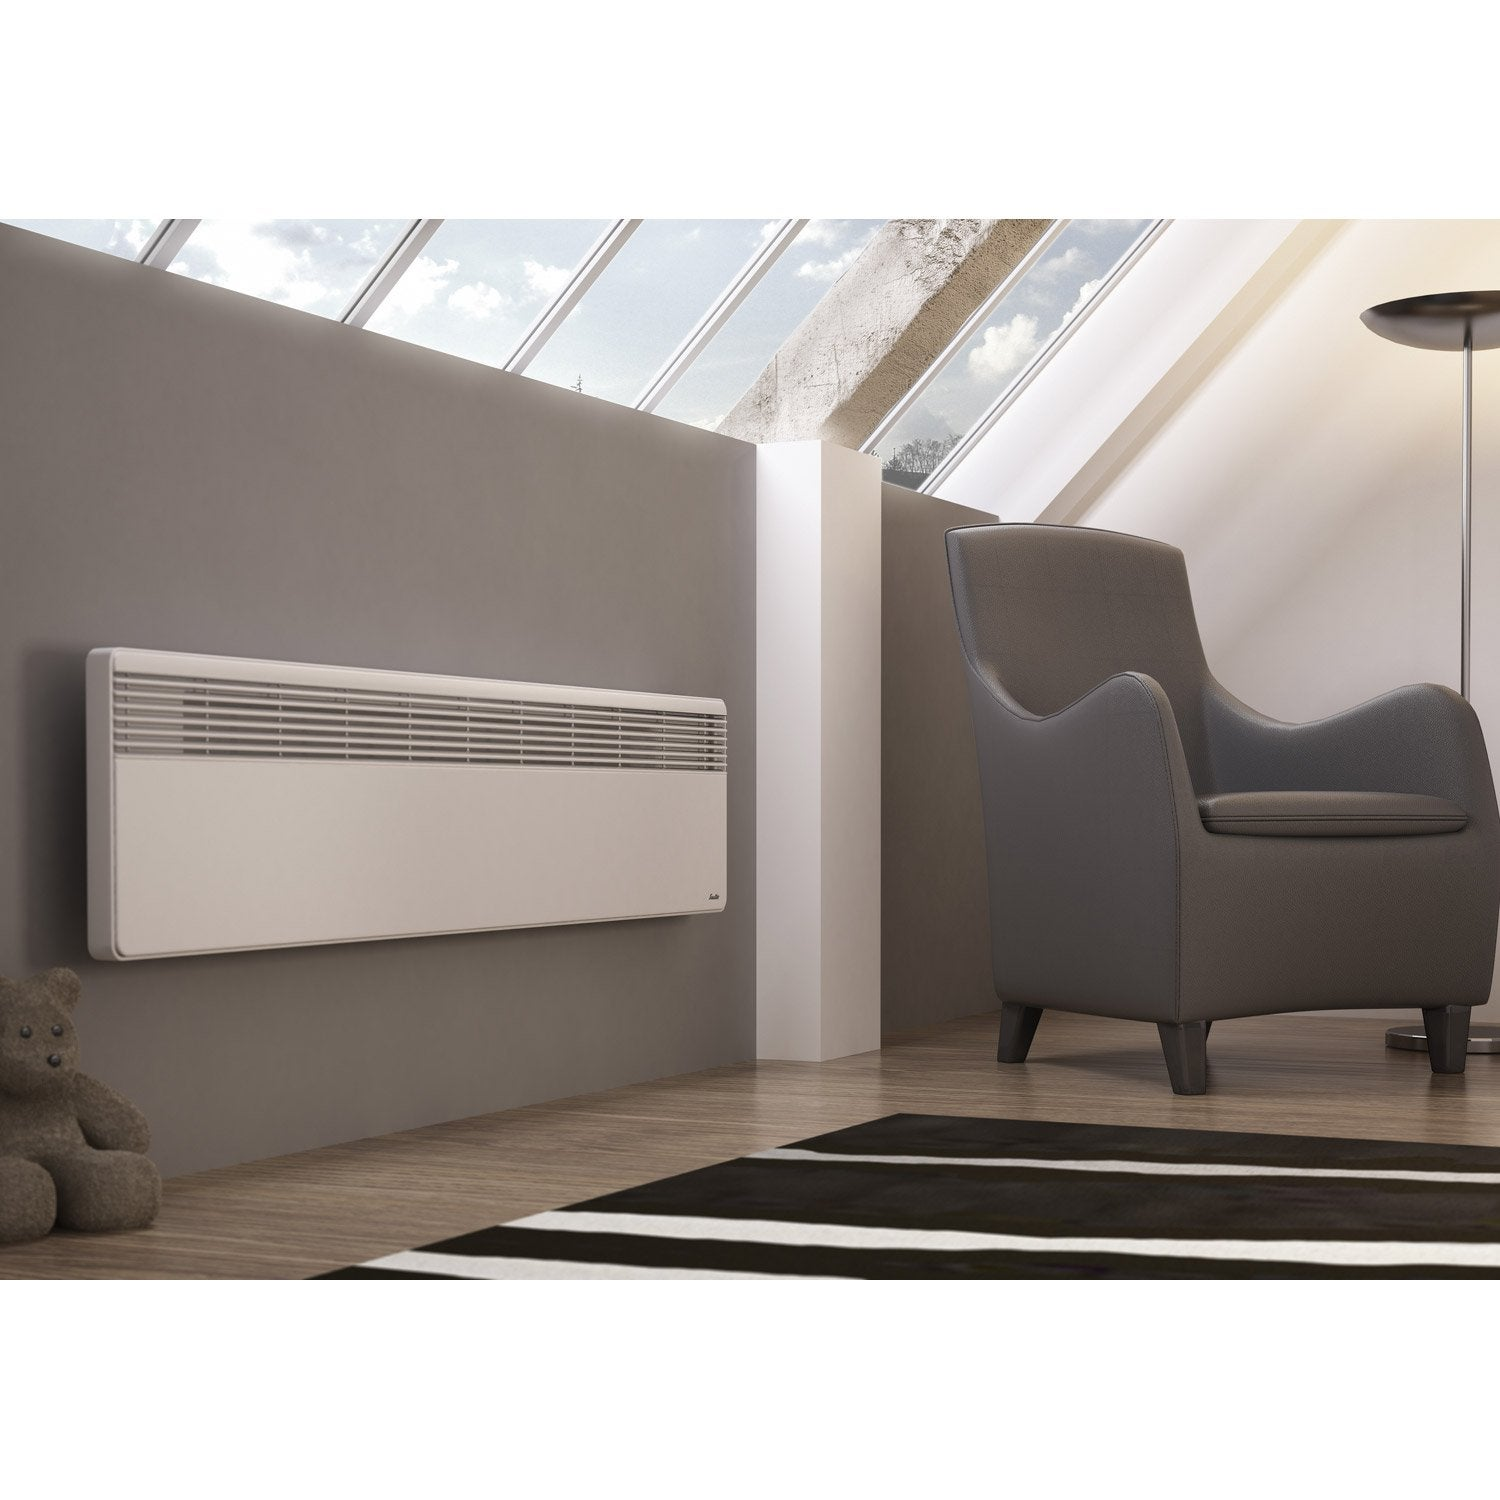 radiateur lectrique convection sauter lucki plinthe 1000 w leroy merlin. Black Bedroom Furniture Sets. Home Design Ideas